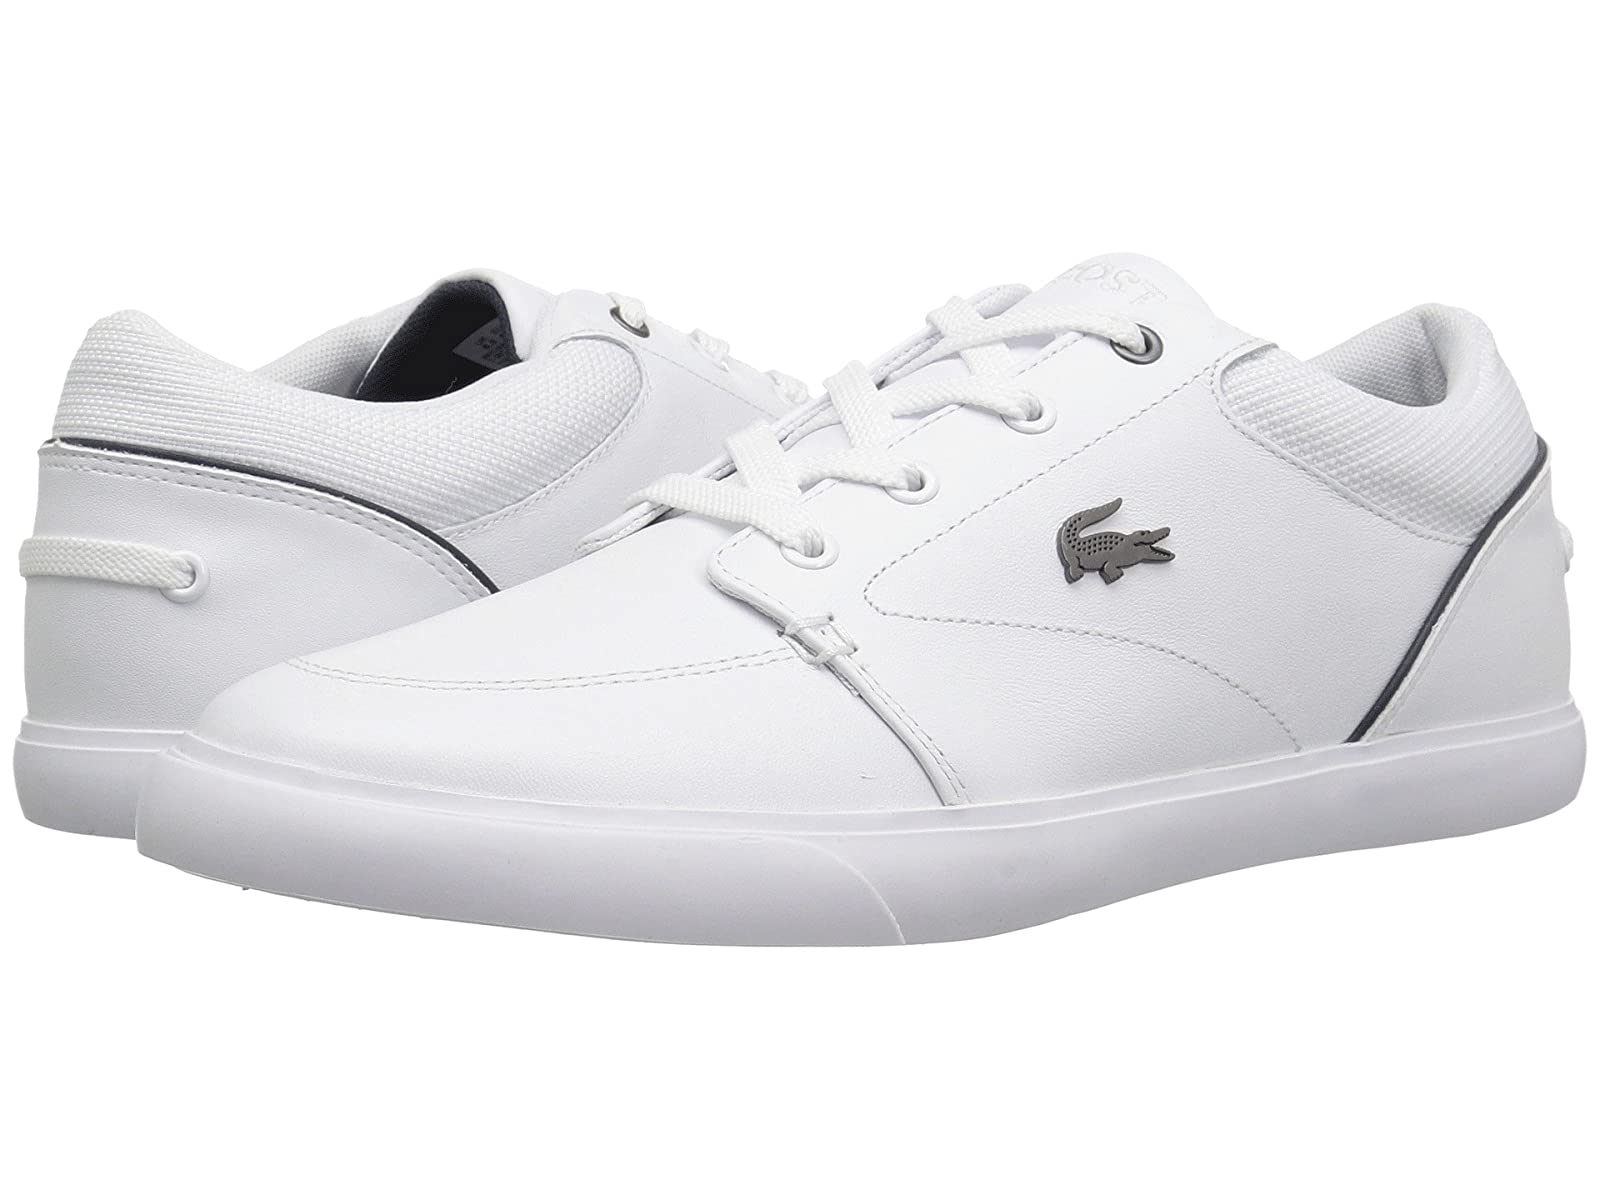 Lacoste Bayliss 318 2Atmospheric grades have affordable shoes